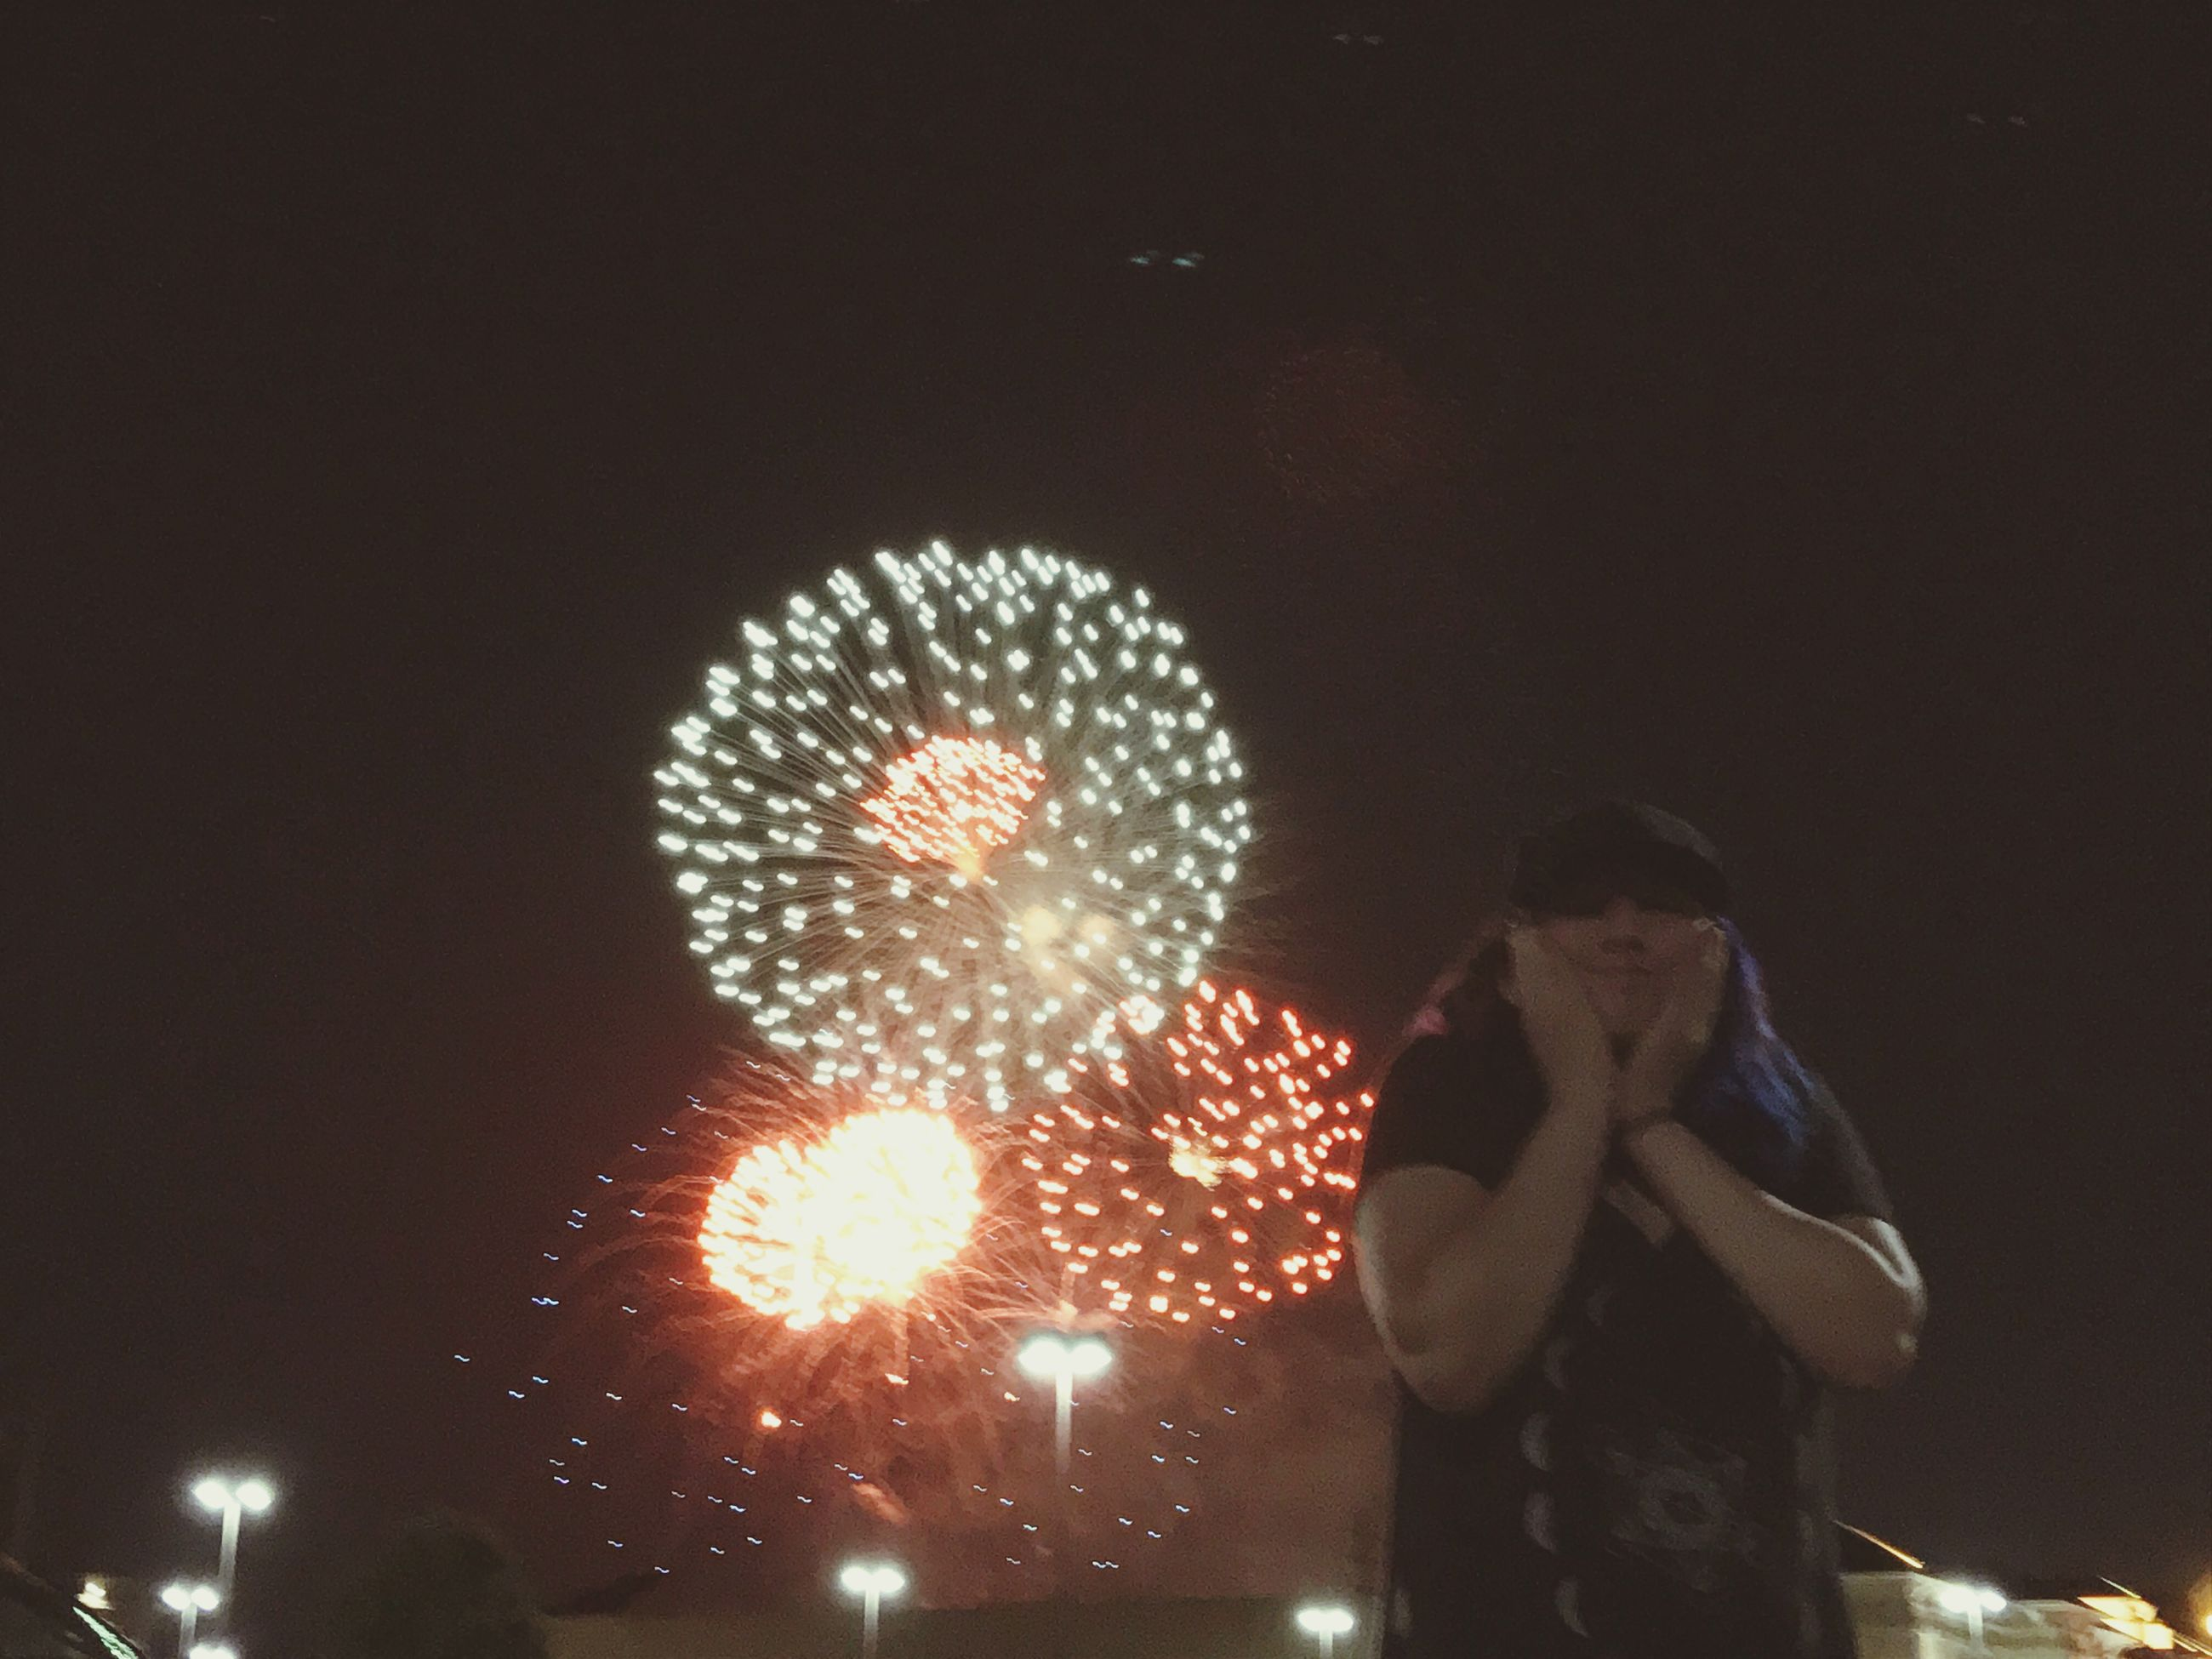 night, illuminated, one person, real people, arts culture and entertainment, motion, firework, long exposure, lifestyles, standing, glowing, men, leisure activity, event, celebration, blurred motion, holding, firework display, exploding, sparks, firework - man made object